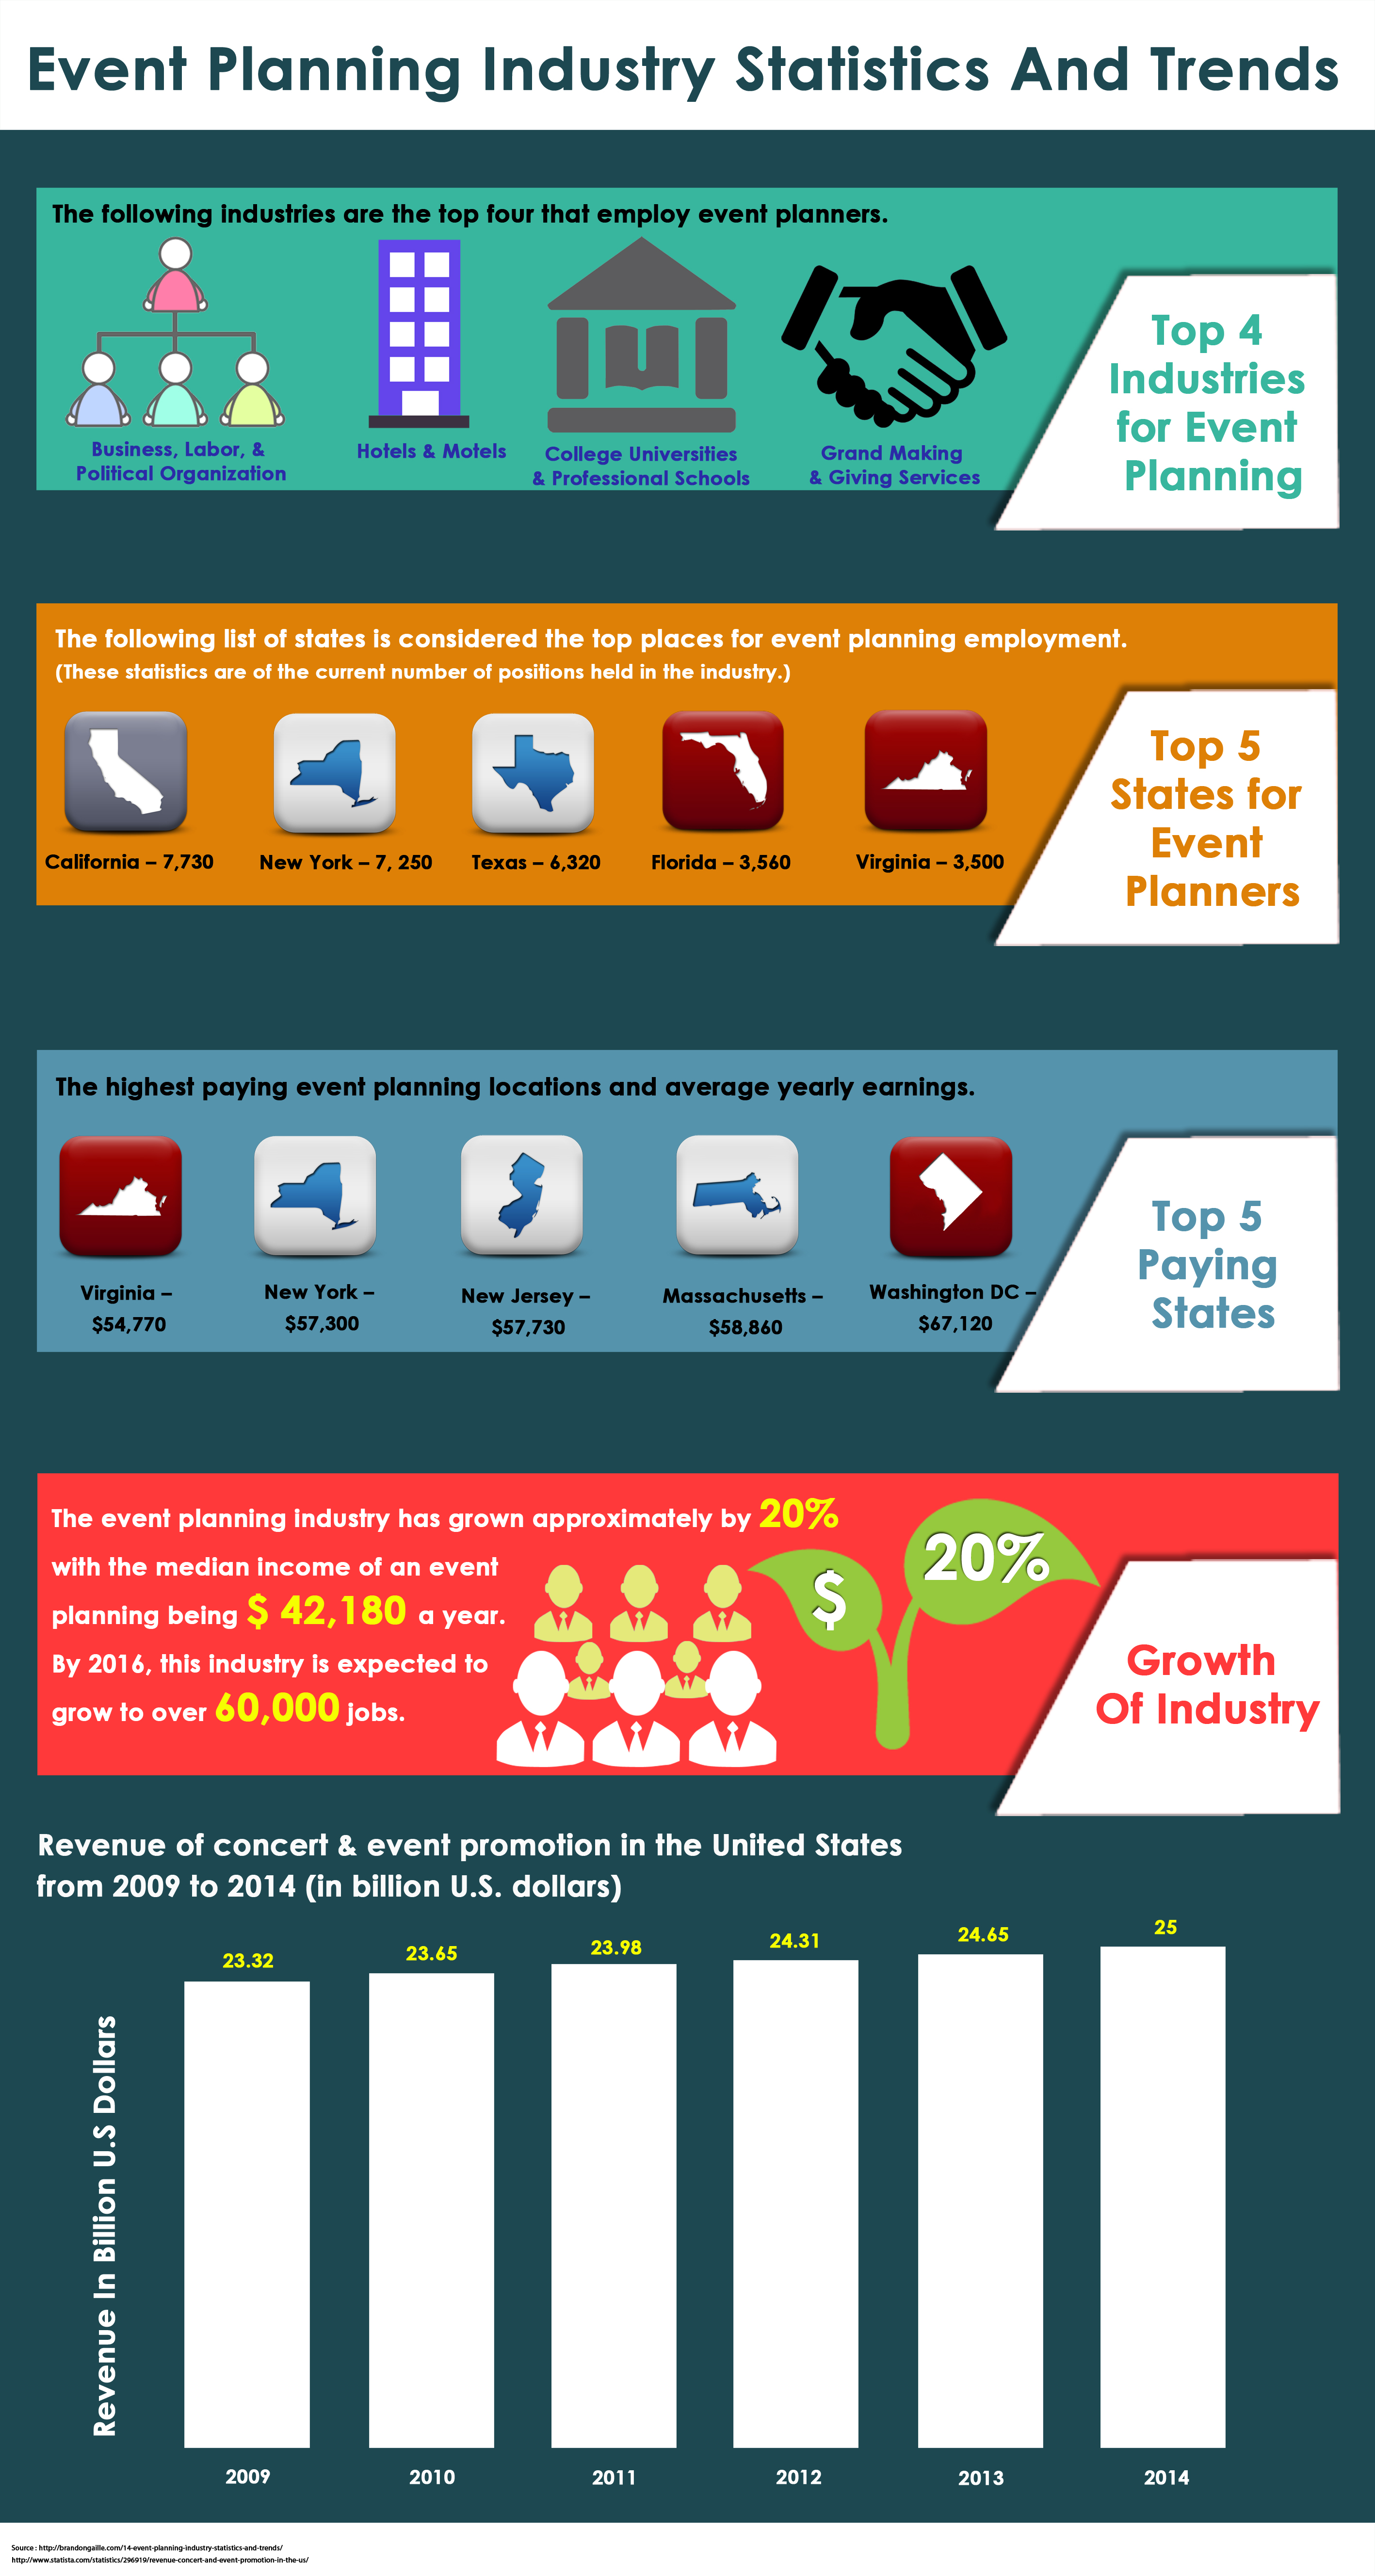 Event Planning Industry Statistics And Trends by SEOsurfer